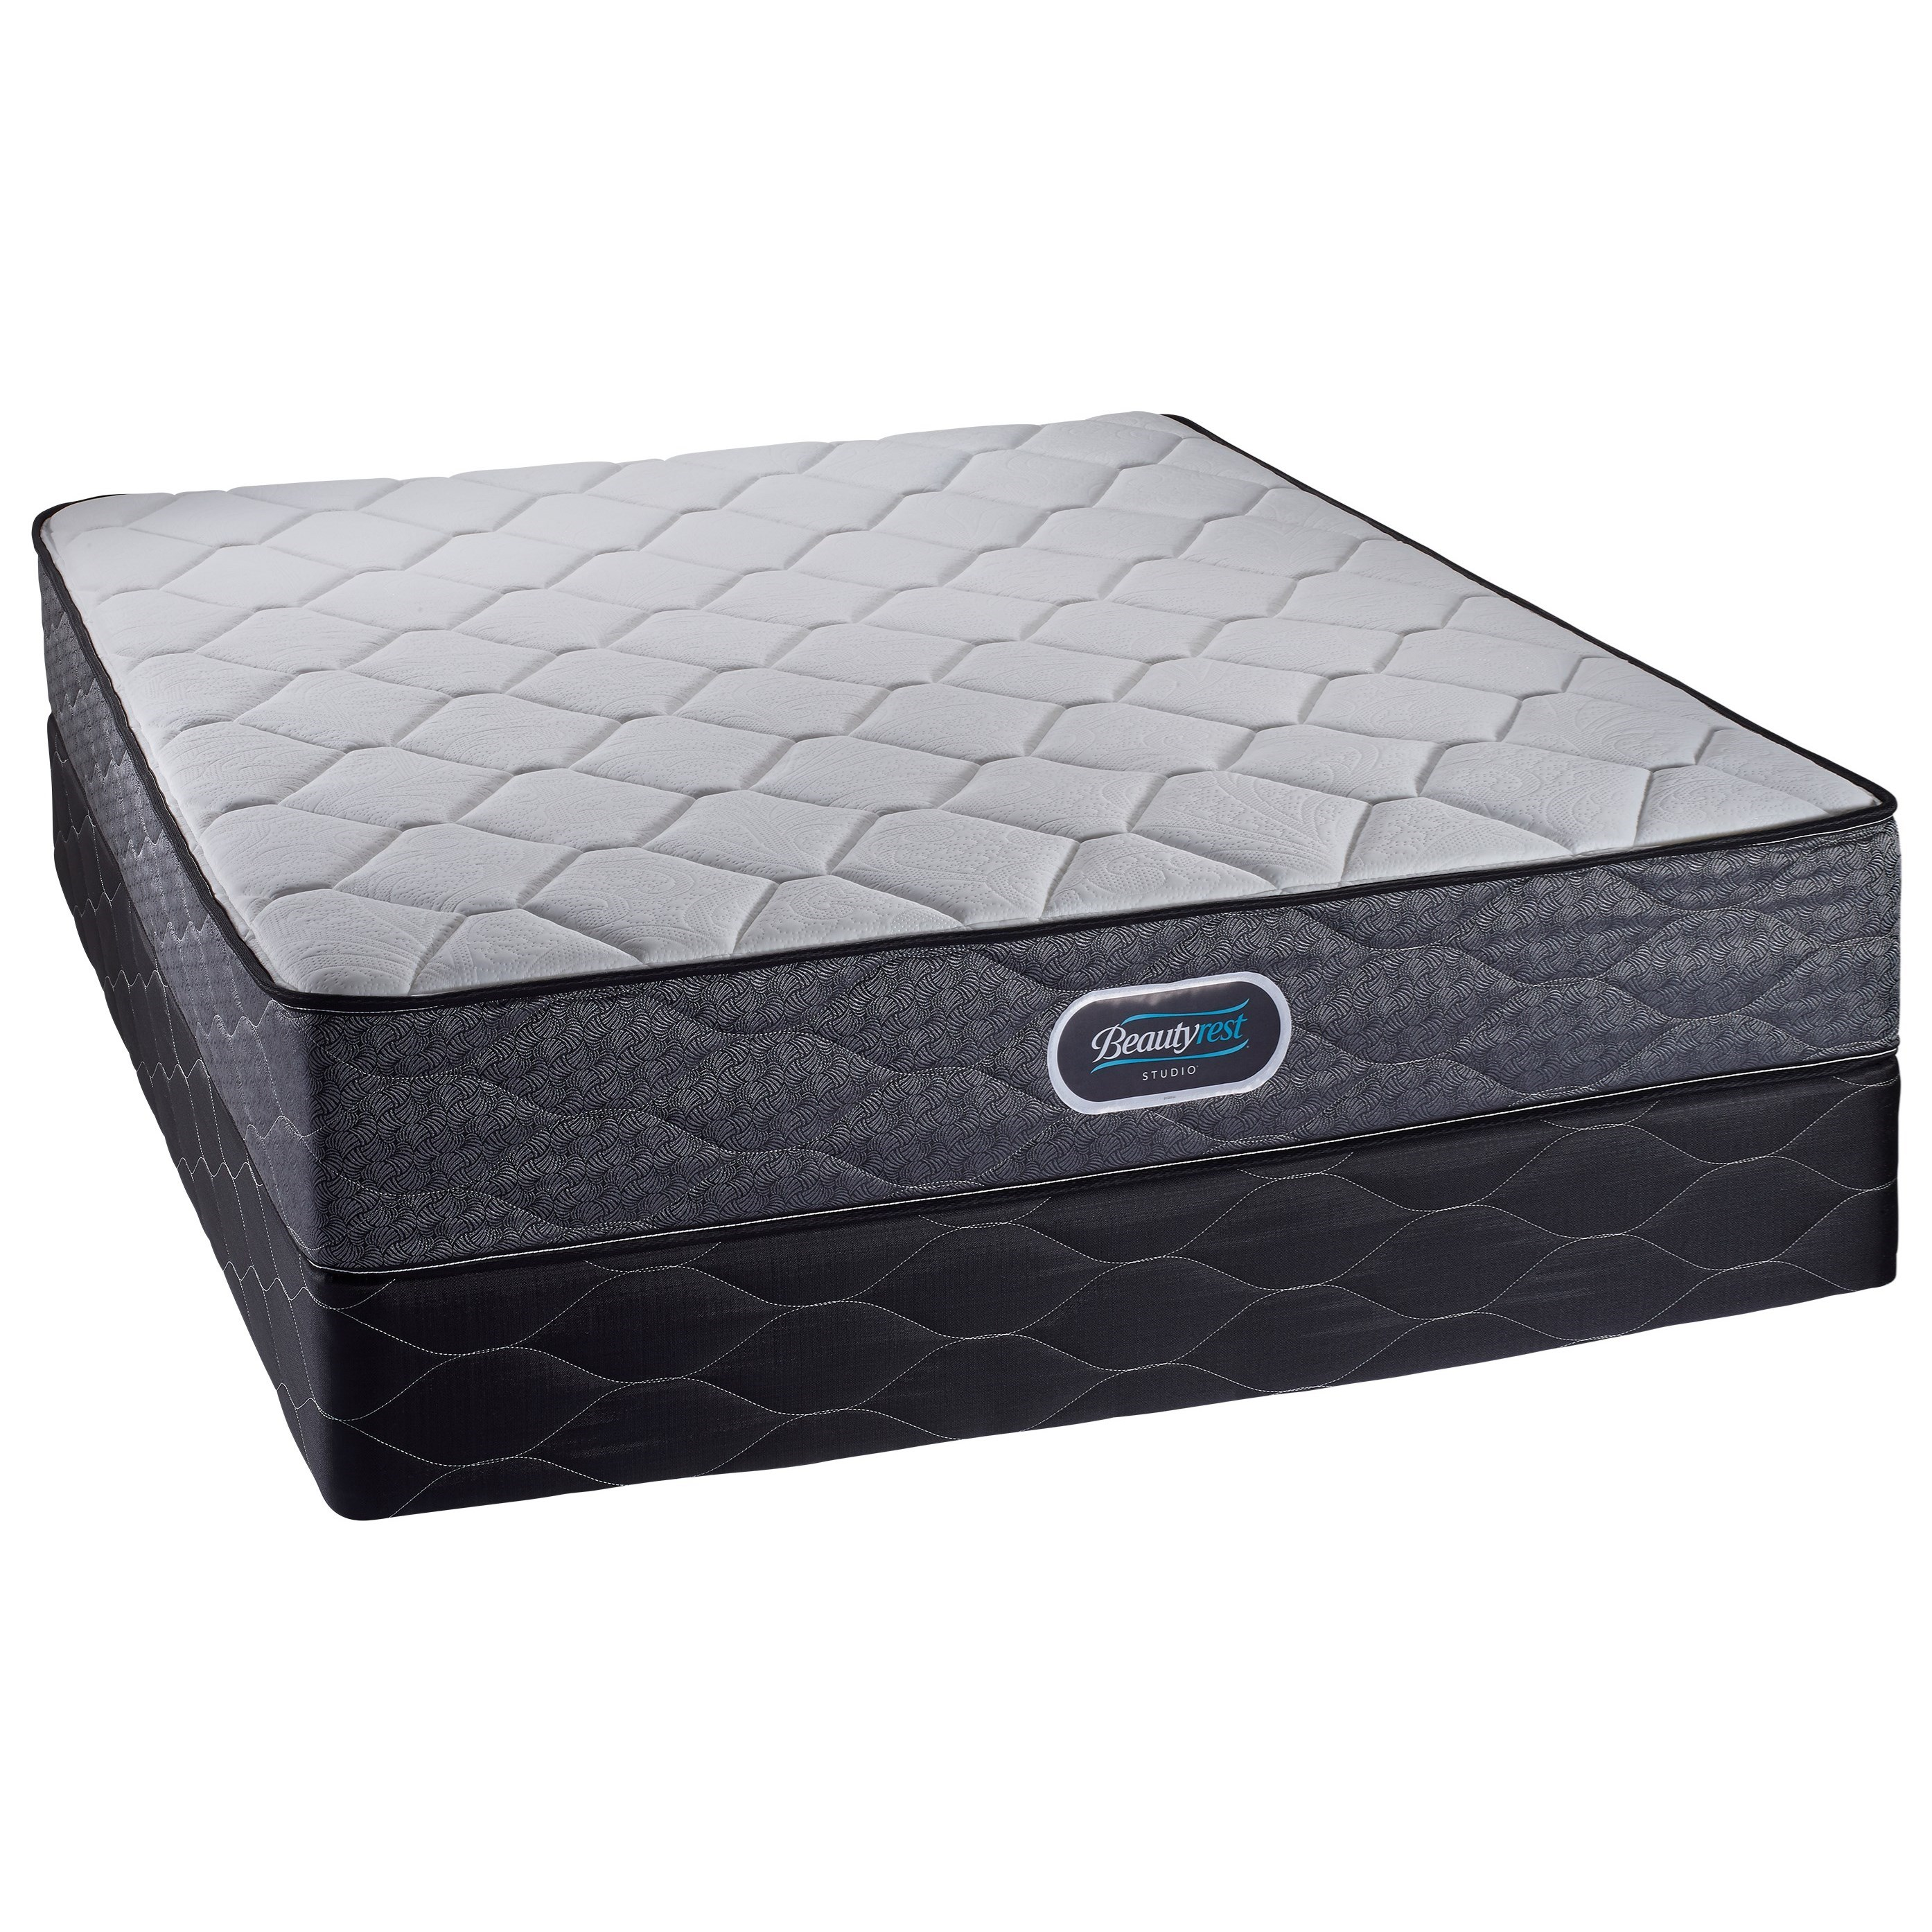 BR Studio Danica Firm Full Firm Tight Top Mattress Set by Beautyrest Canada at Jordan's Home Furnishings